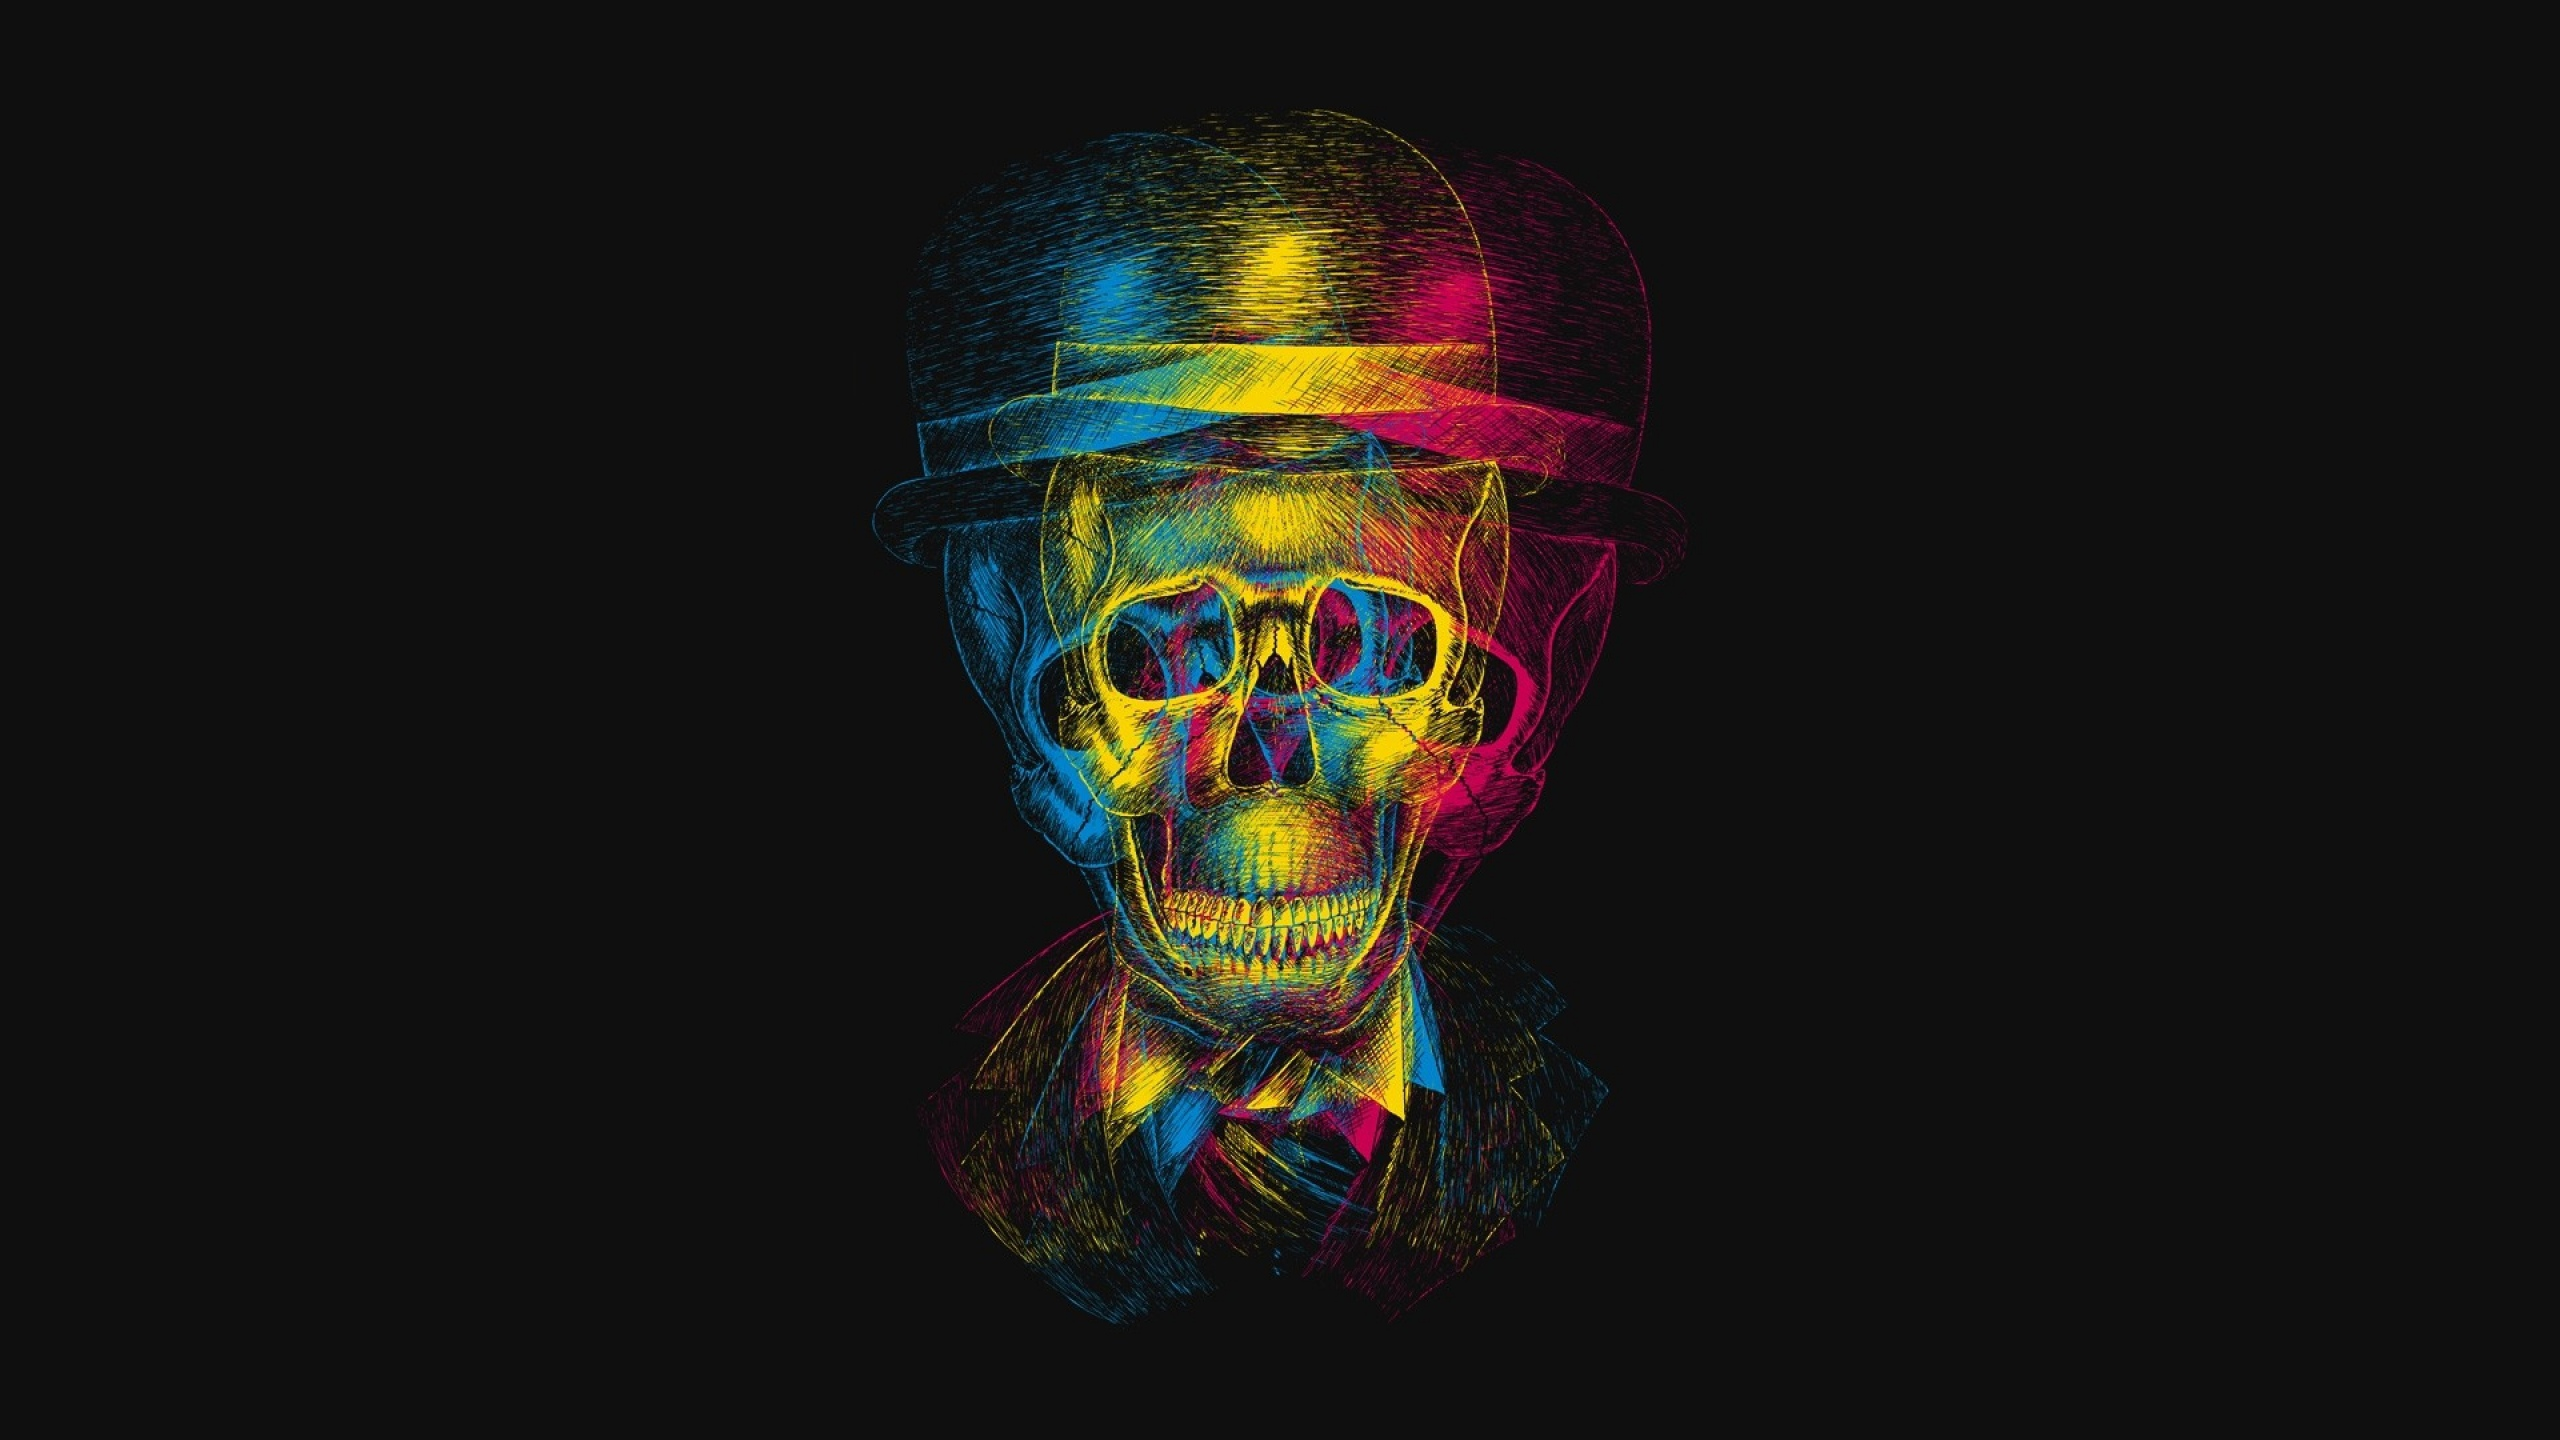 Skull Wallpapers Hd Resolution Is Cool Wallpapers